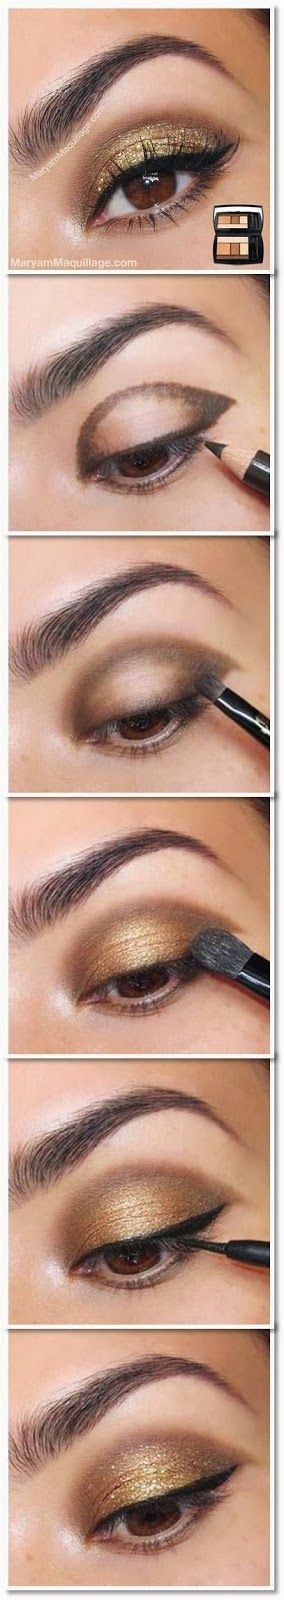 Cute make up idea